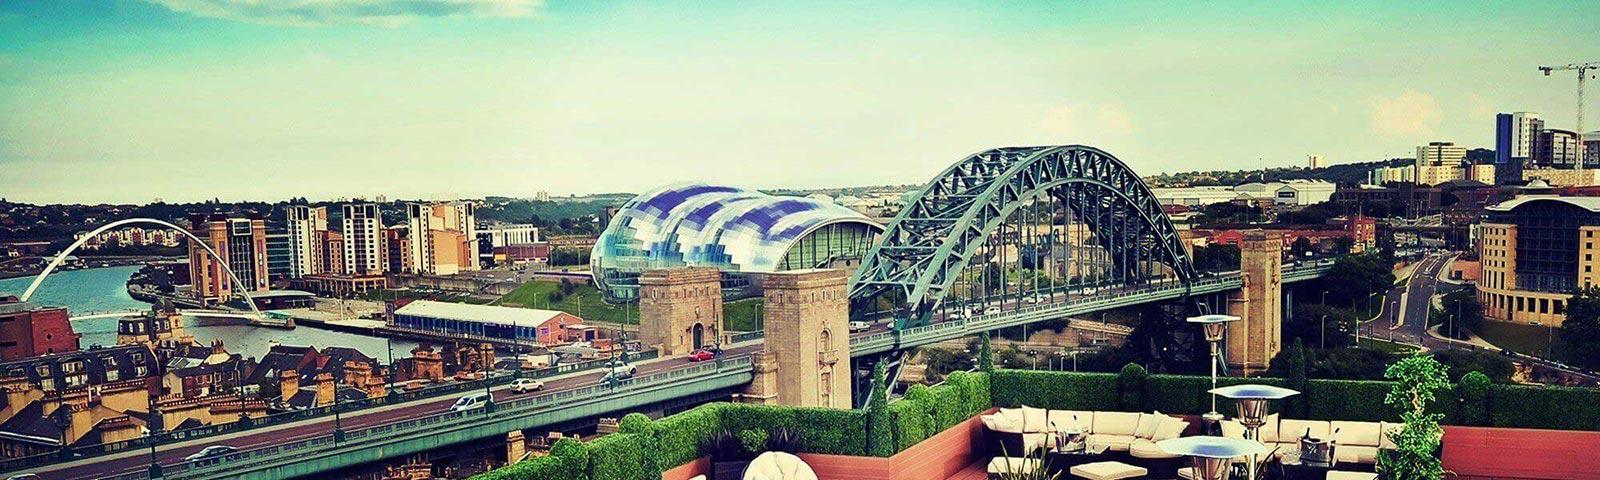 Panoramic view of the Newcastle town featuring the Tyne bridge.